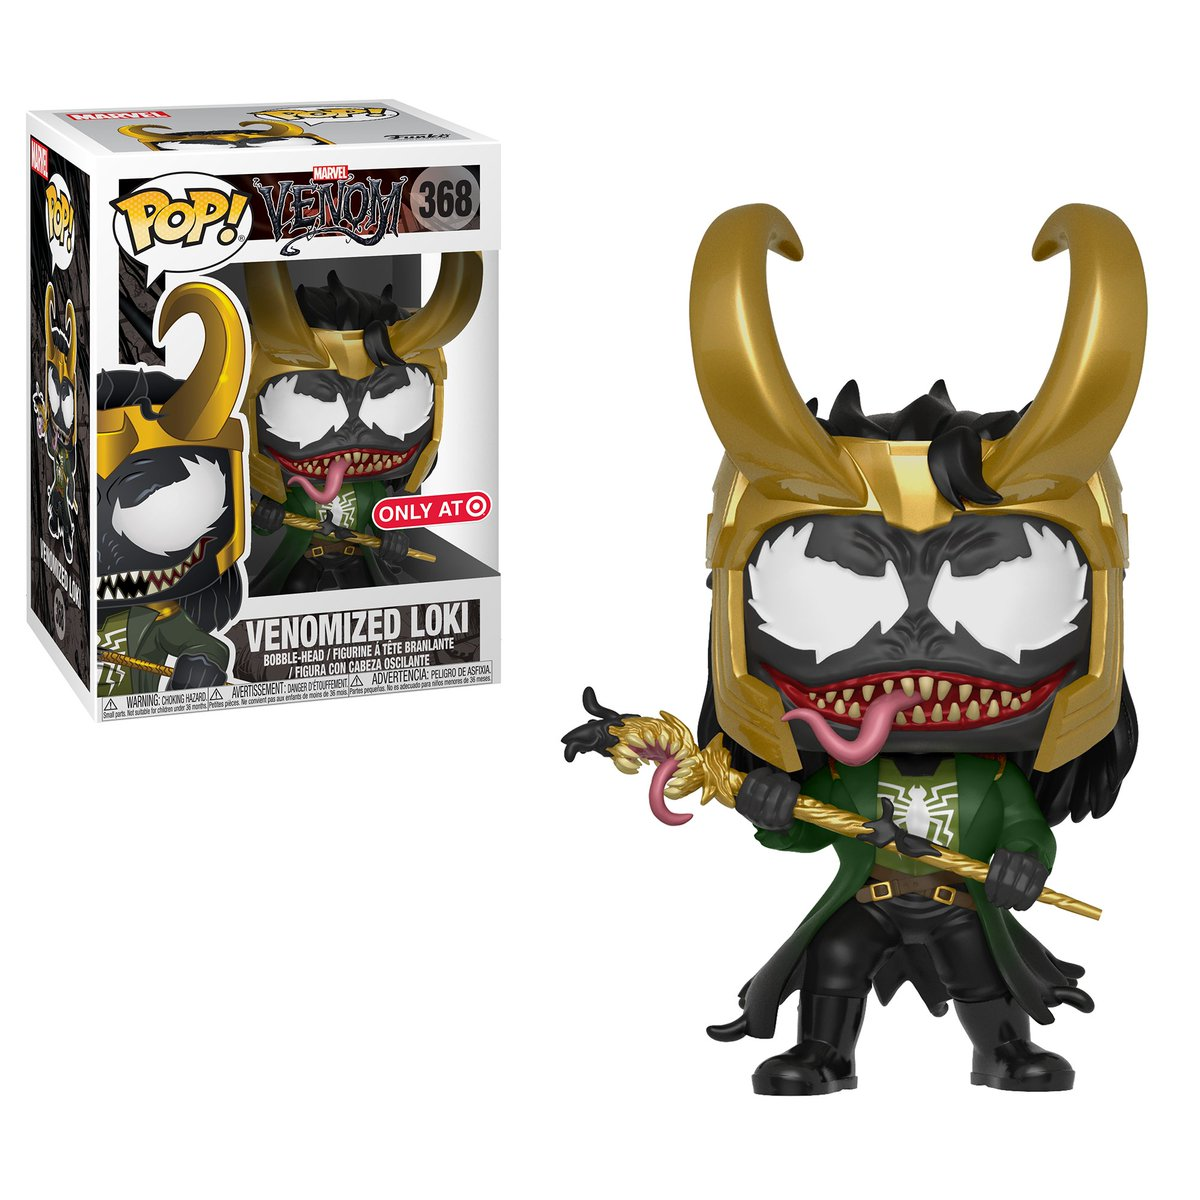 RT & follow @OriginalFunko for the chance to win a @Target exclusive Venomized Loki Pop!